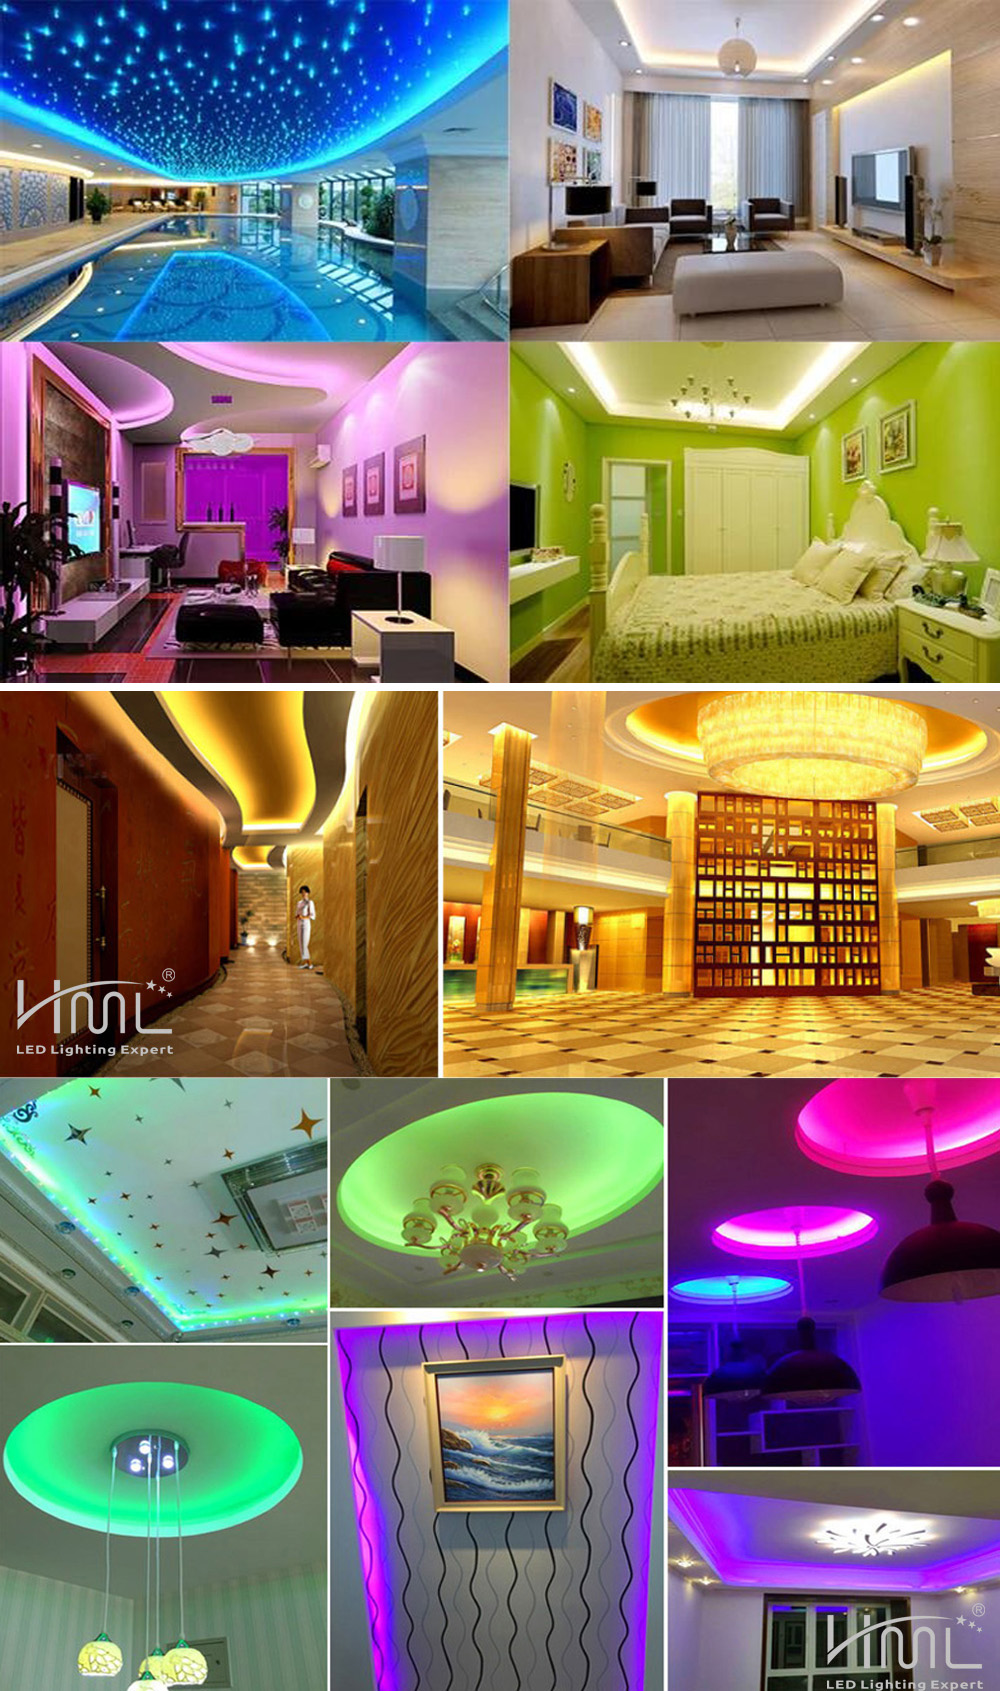 HML 5M 72W 5050 RGB LED Strip Light with 24 Keys Remote Control And US Power Adapter